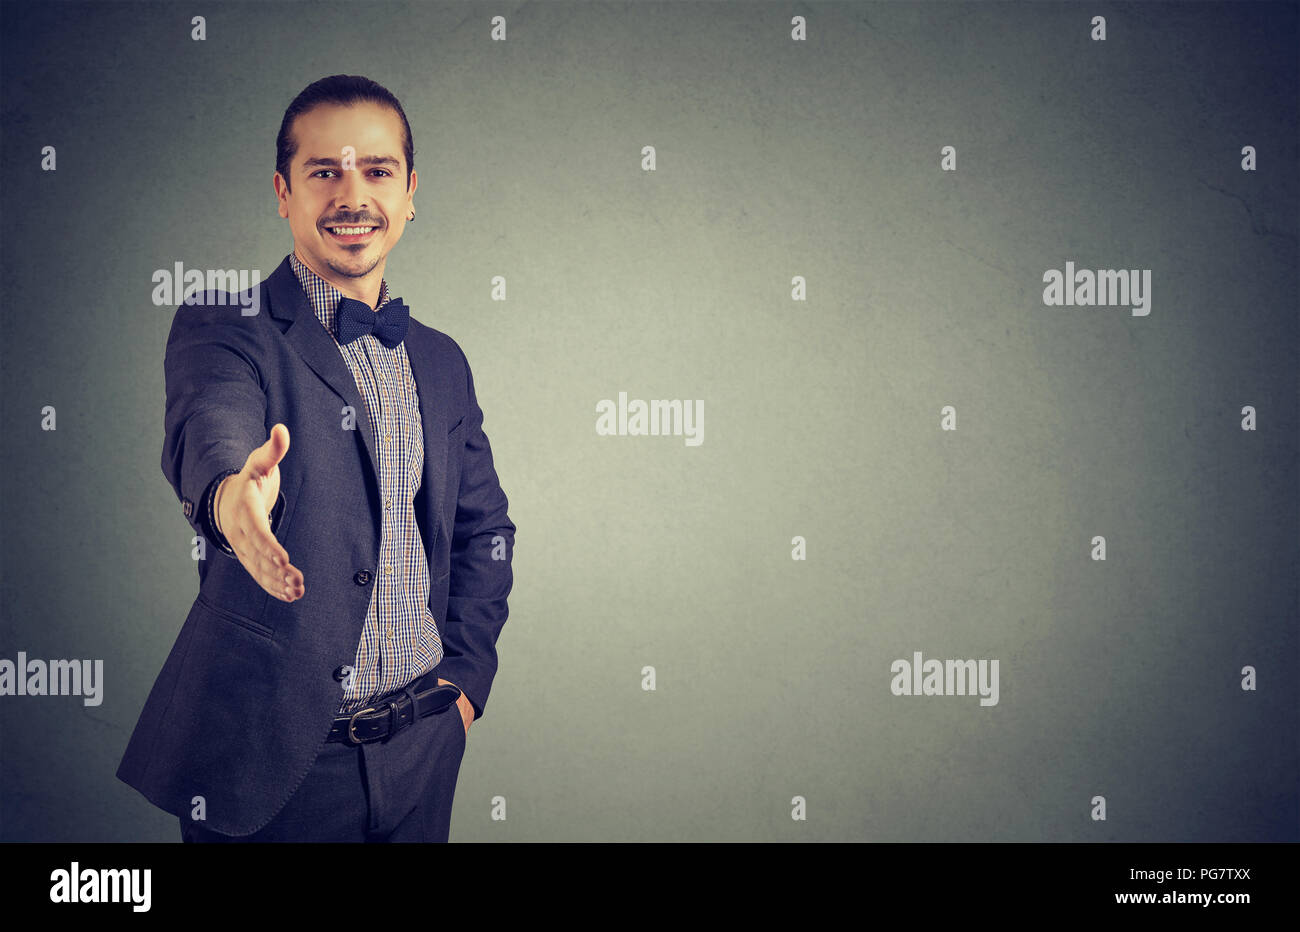 Smiling stylish young man outstretching hand at camera to give greeting handshake on gray - Stock Image